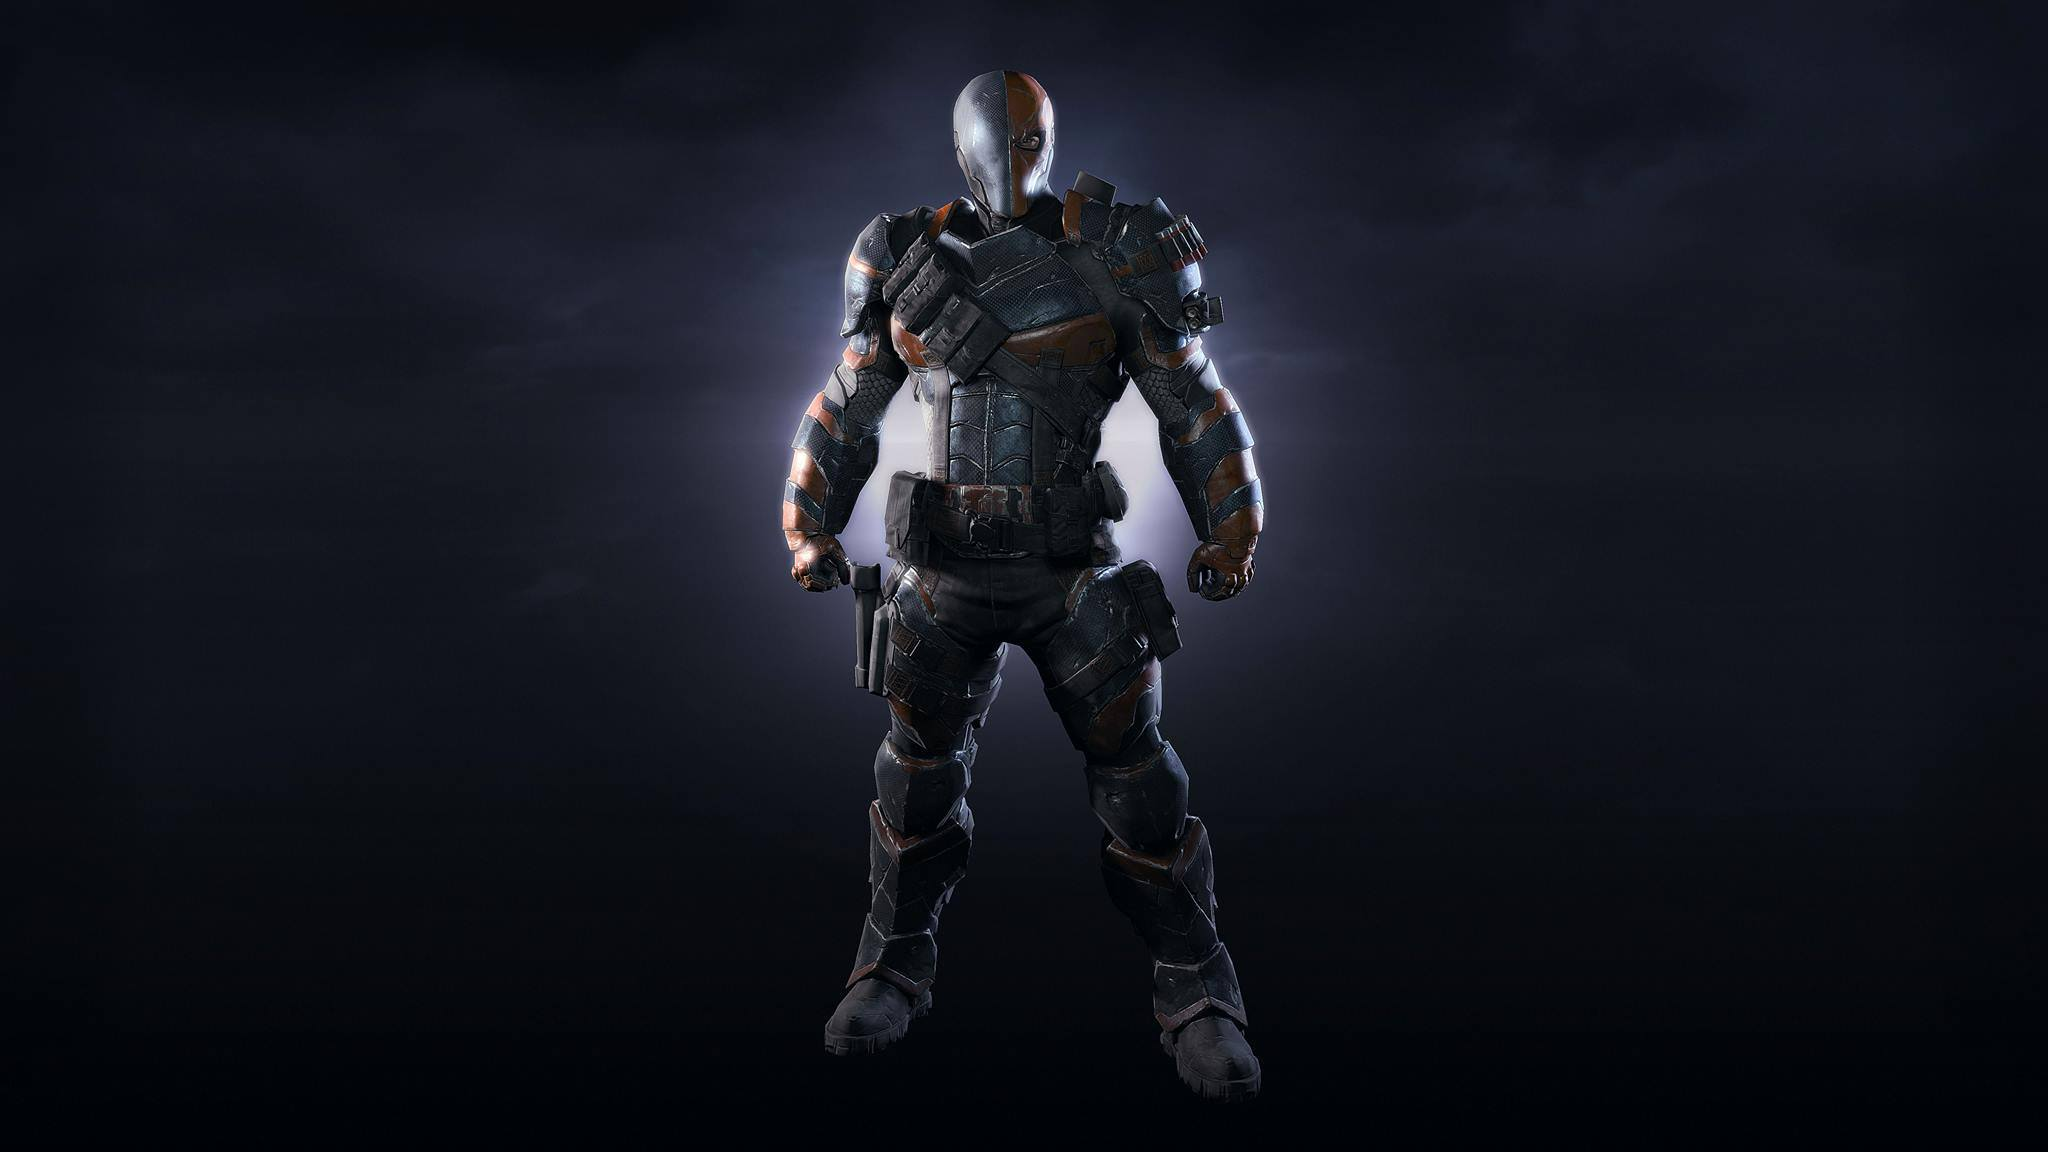 batman online gallery deathstroke wallpaper from